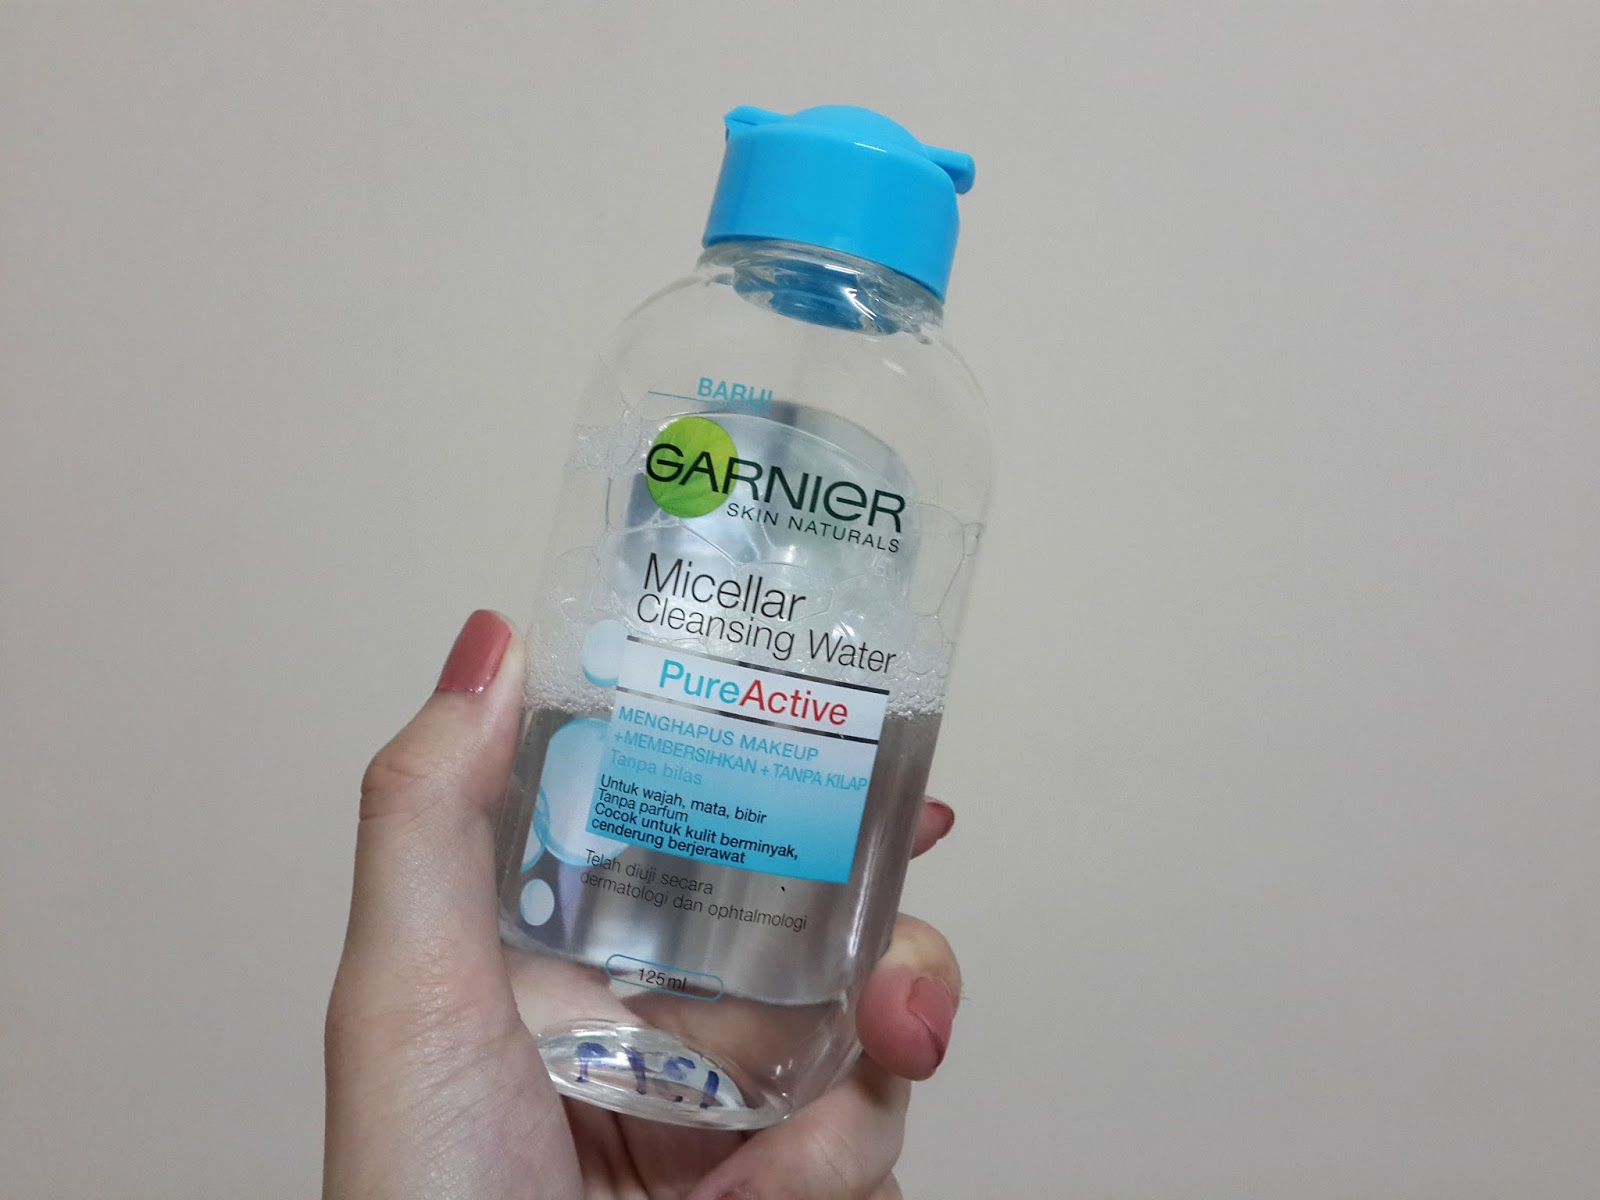 Garnier Micellar Cleansing Water Nay Honey 125ml Recently Came Out With The Being An Intern At Loreal Malaysia I Received A Travel Sized Bottle To Try It